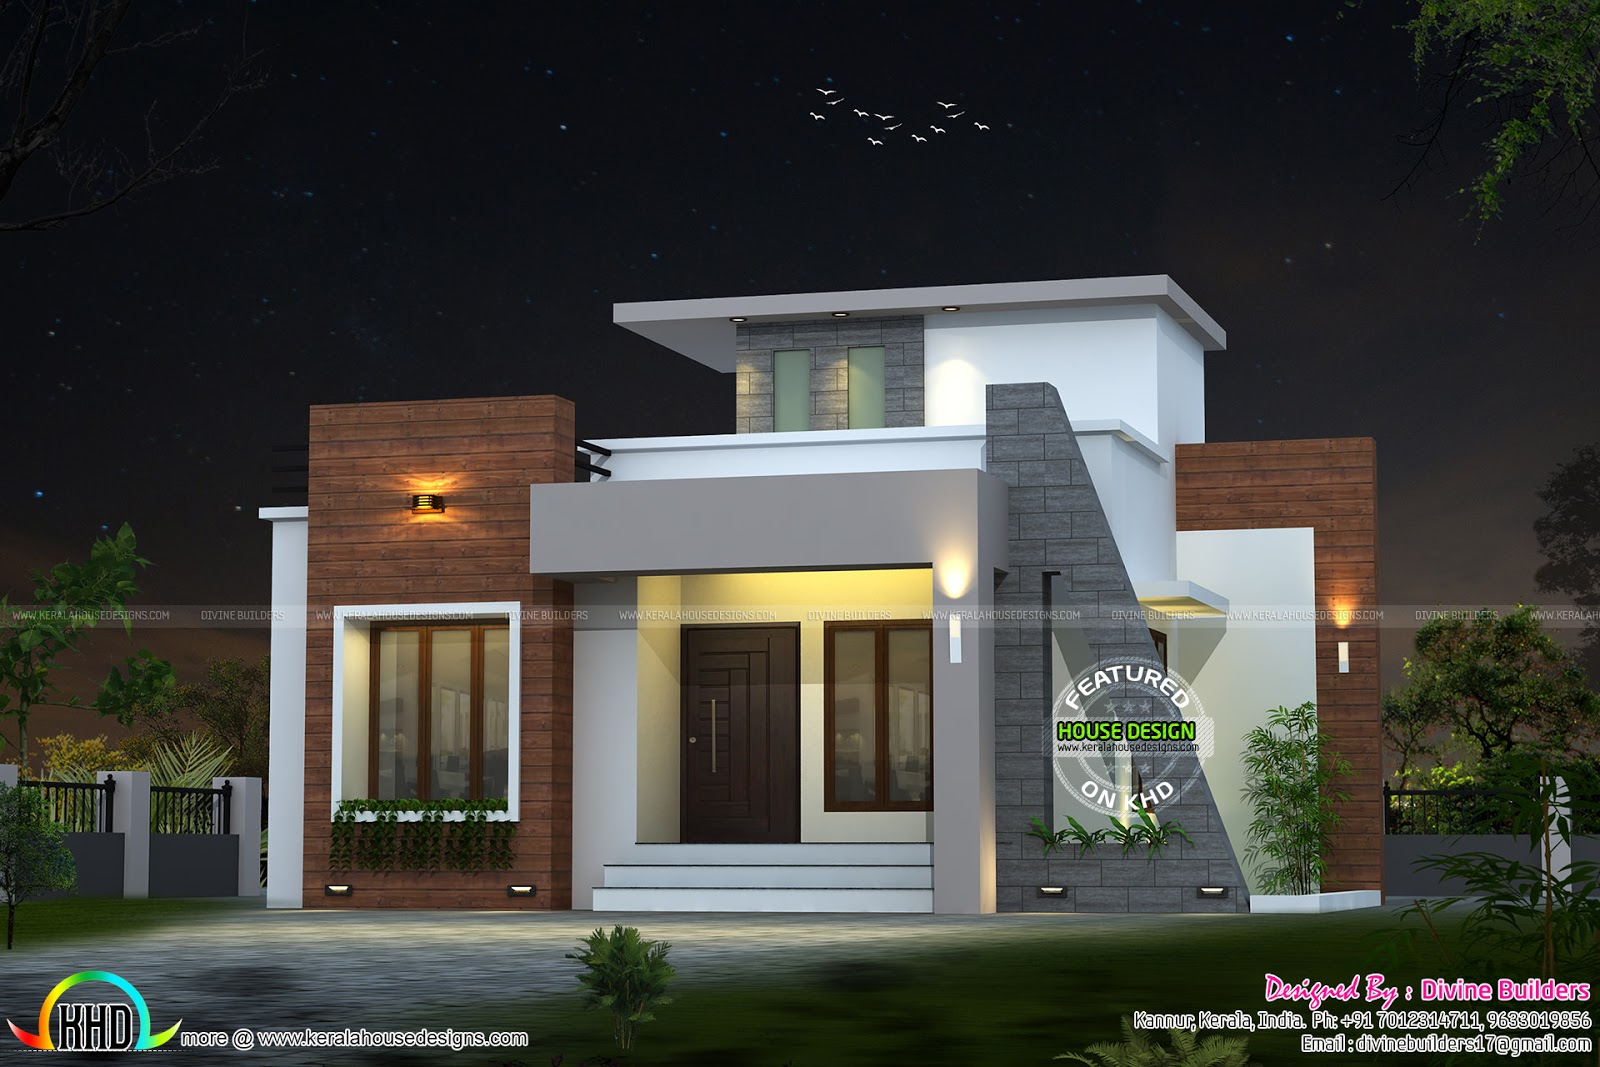 20 Lakhs Budget House Plans In Kerala